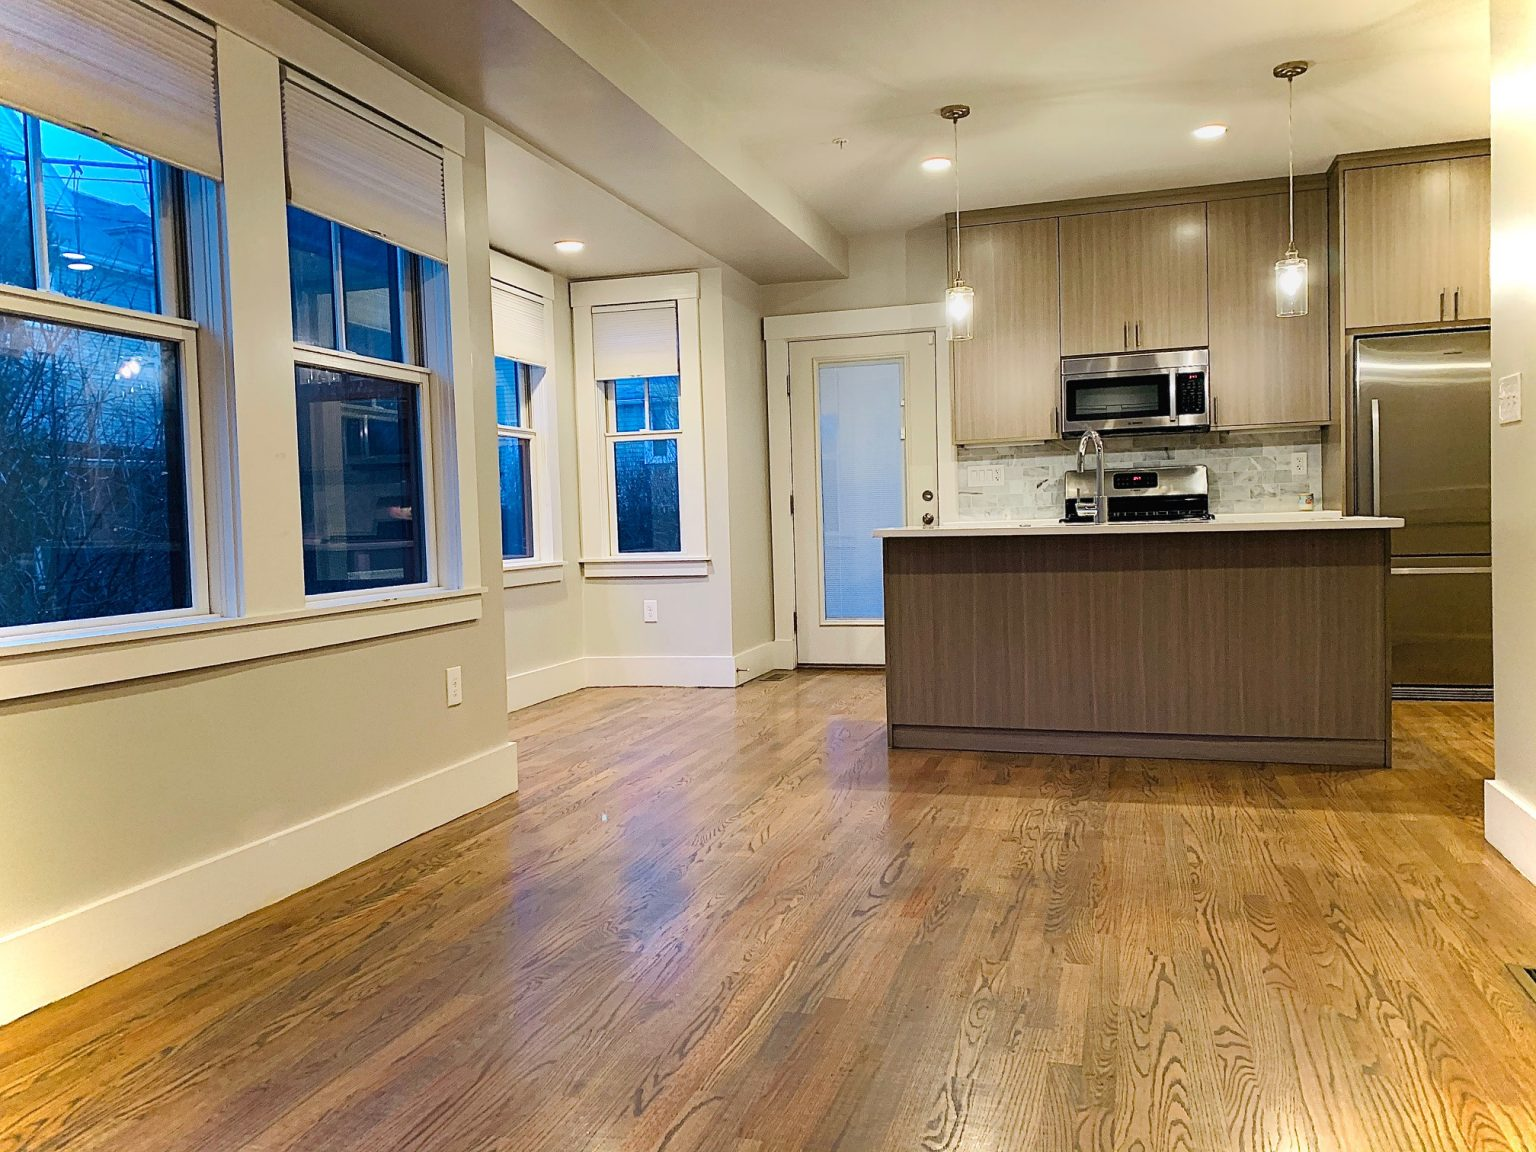 How much does interior house painting costs